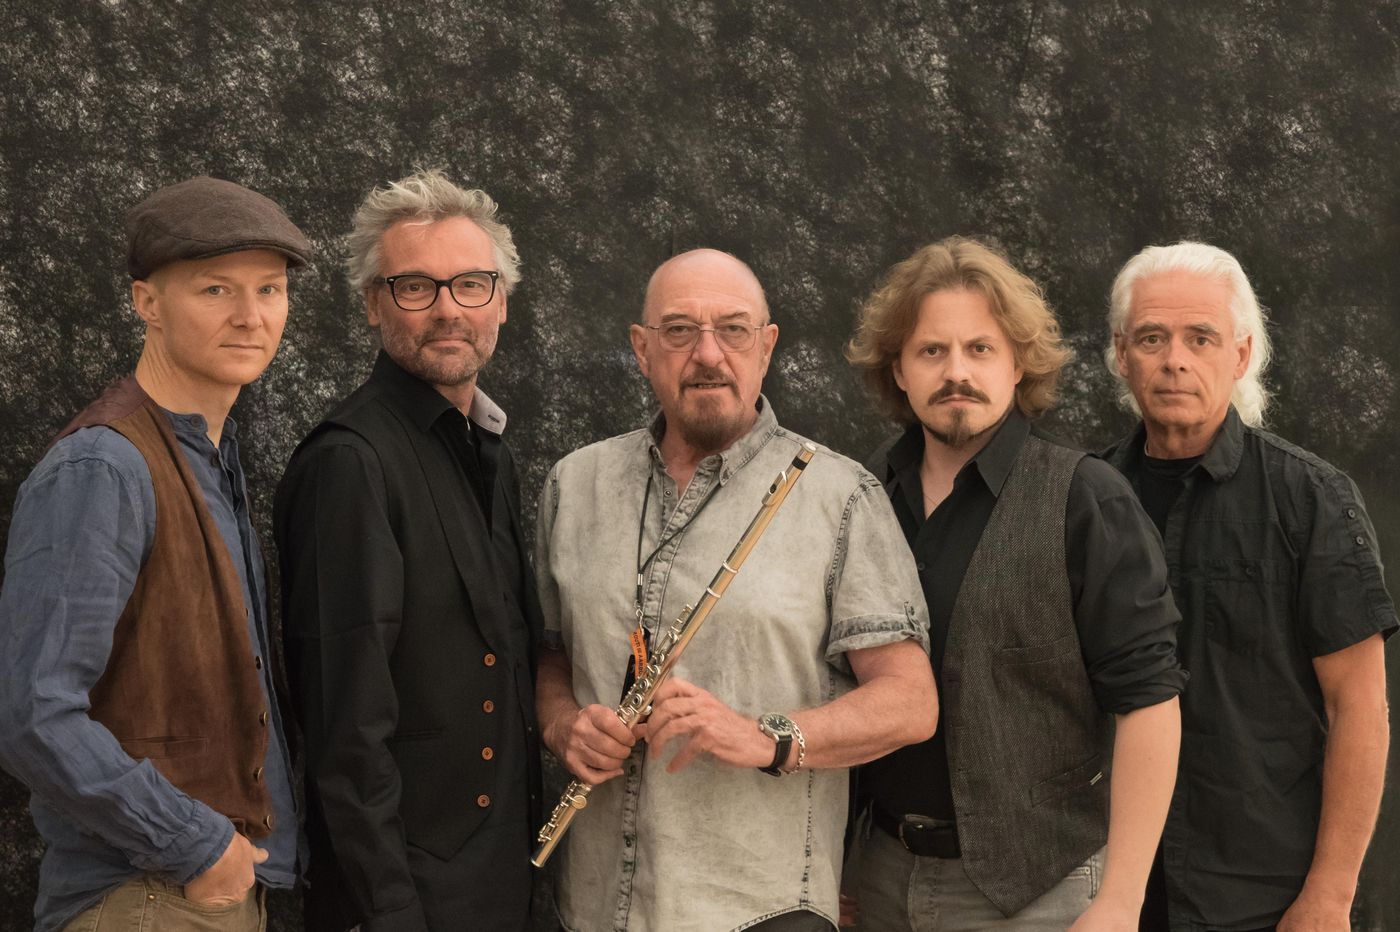 Jethro Tull at 50: Leader Ian Anderson says skipping Woodstock was the best decision of his career